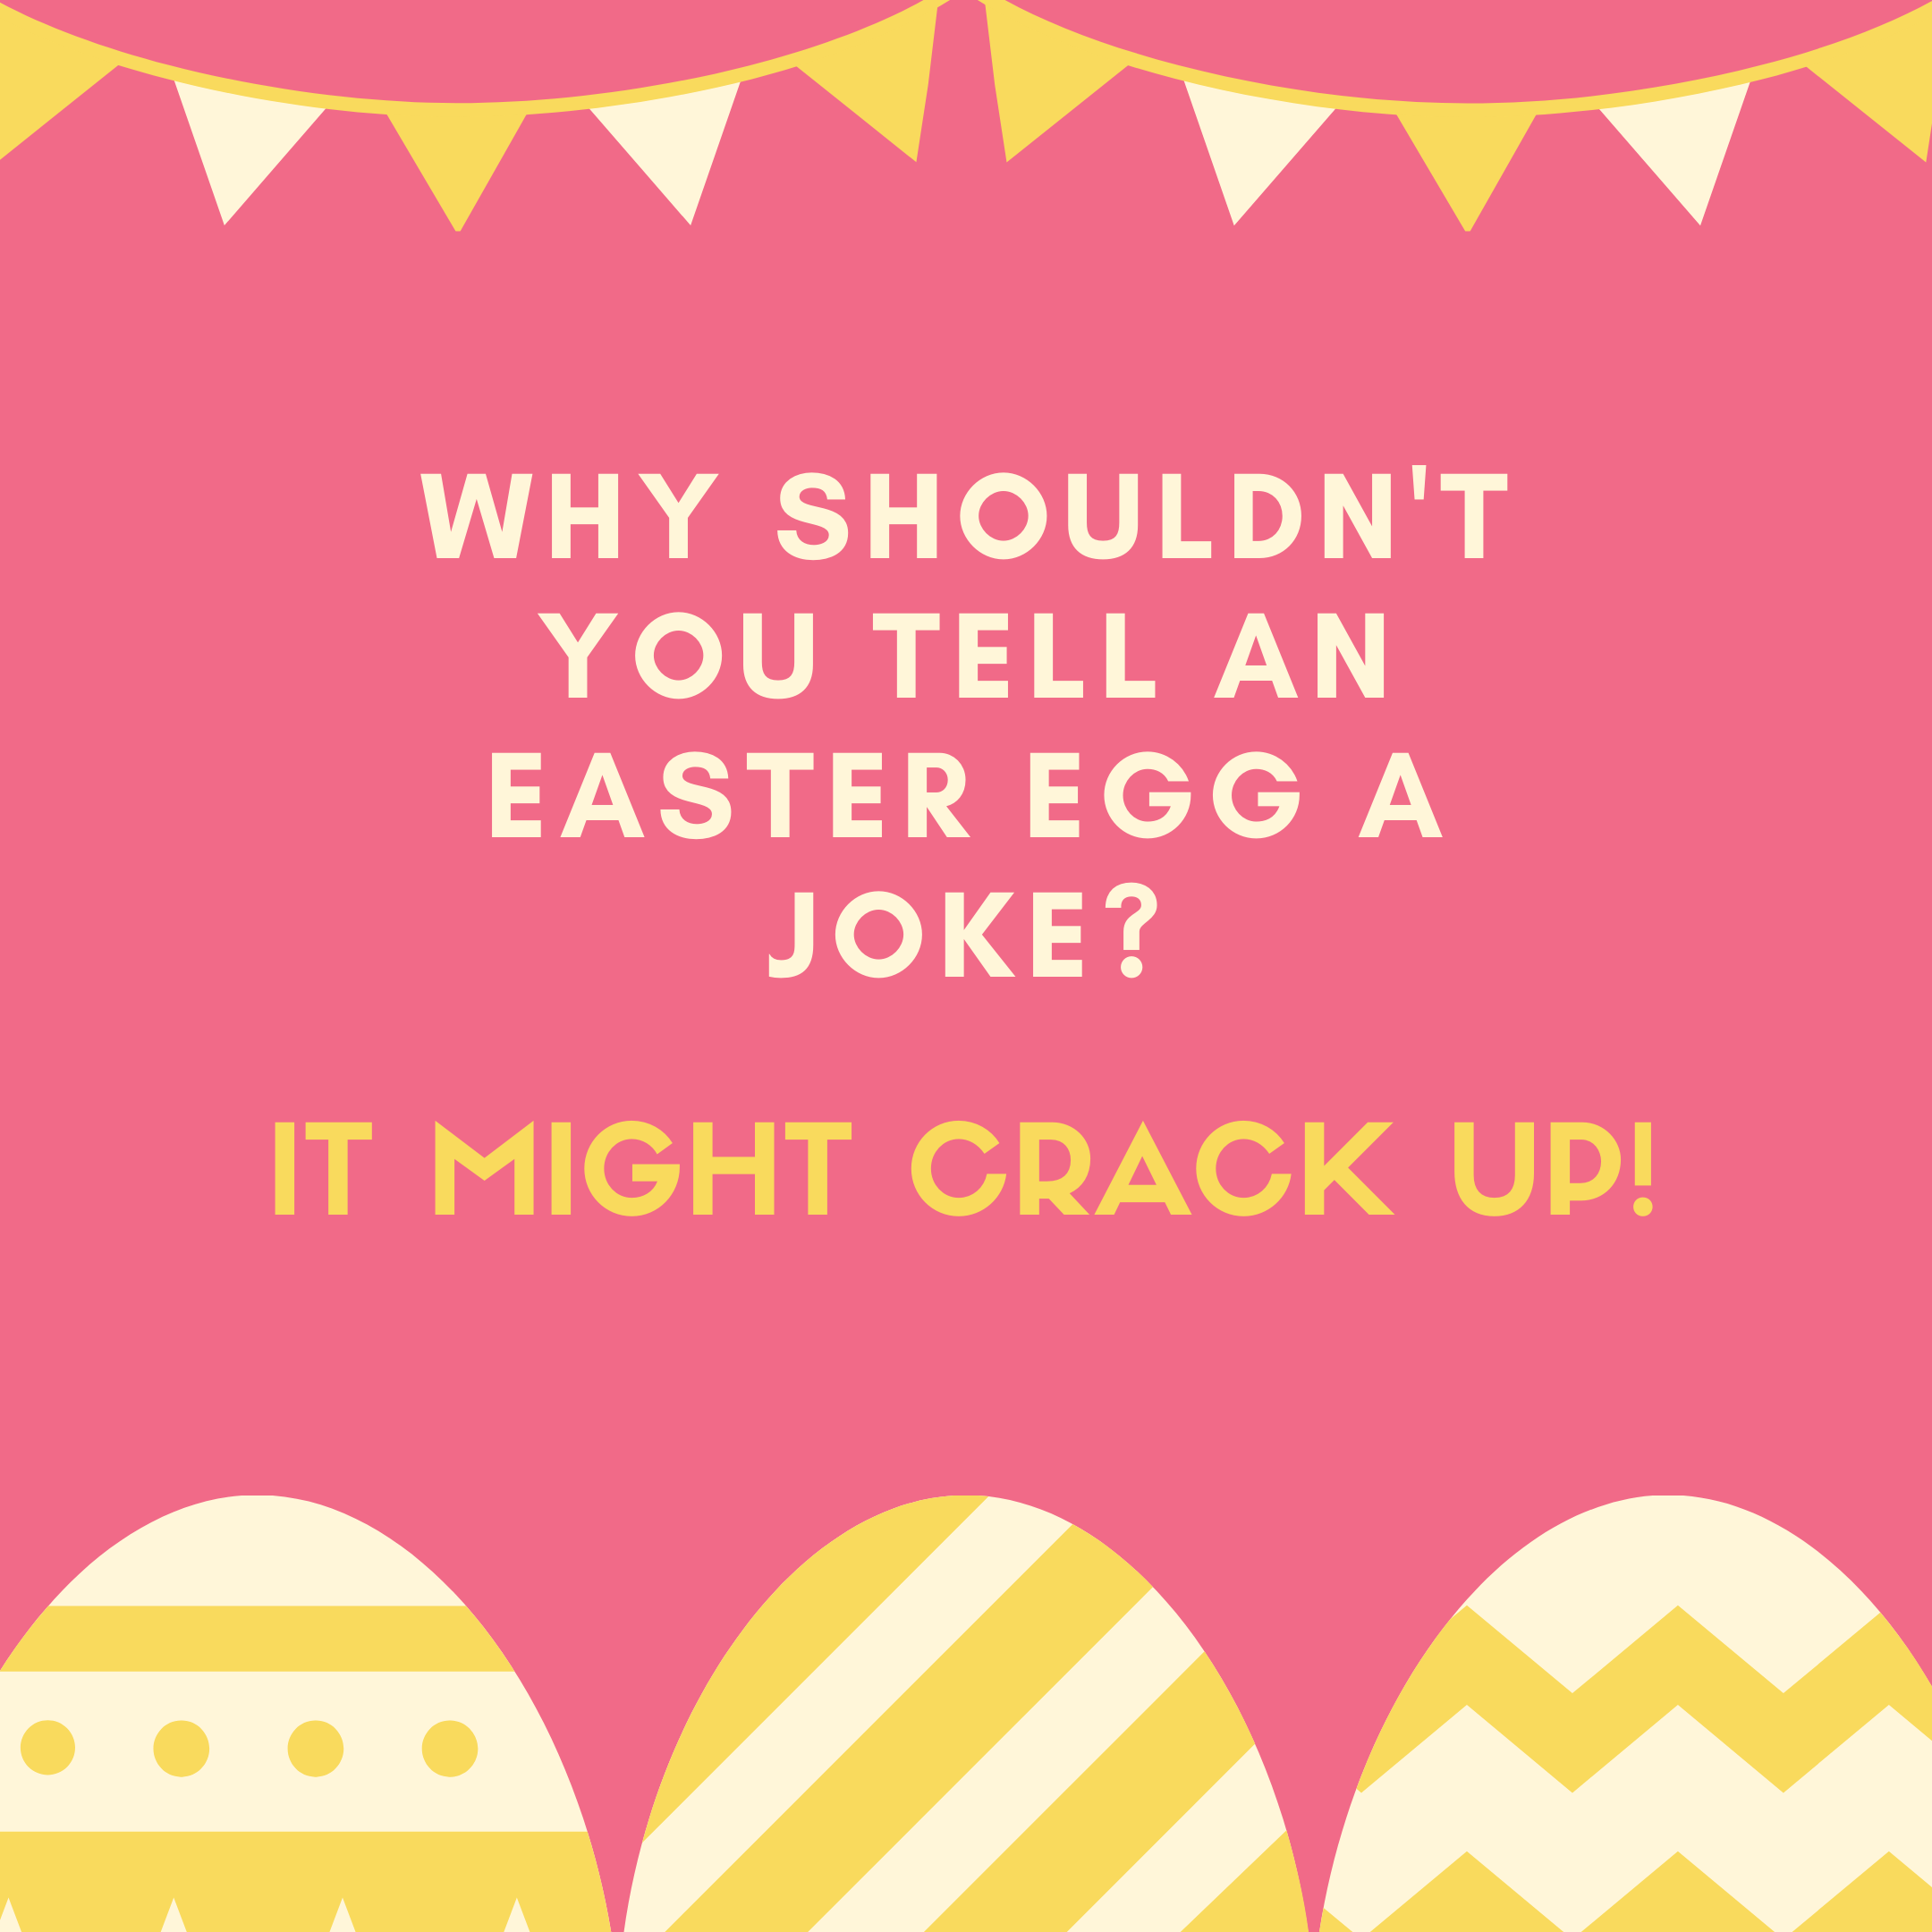 Why shouldn't you tell an Easter egg a joke? It might crack up!